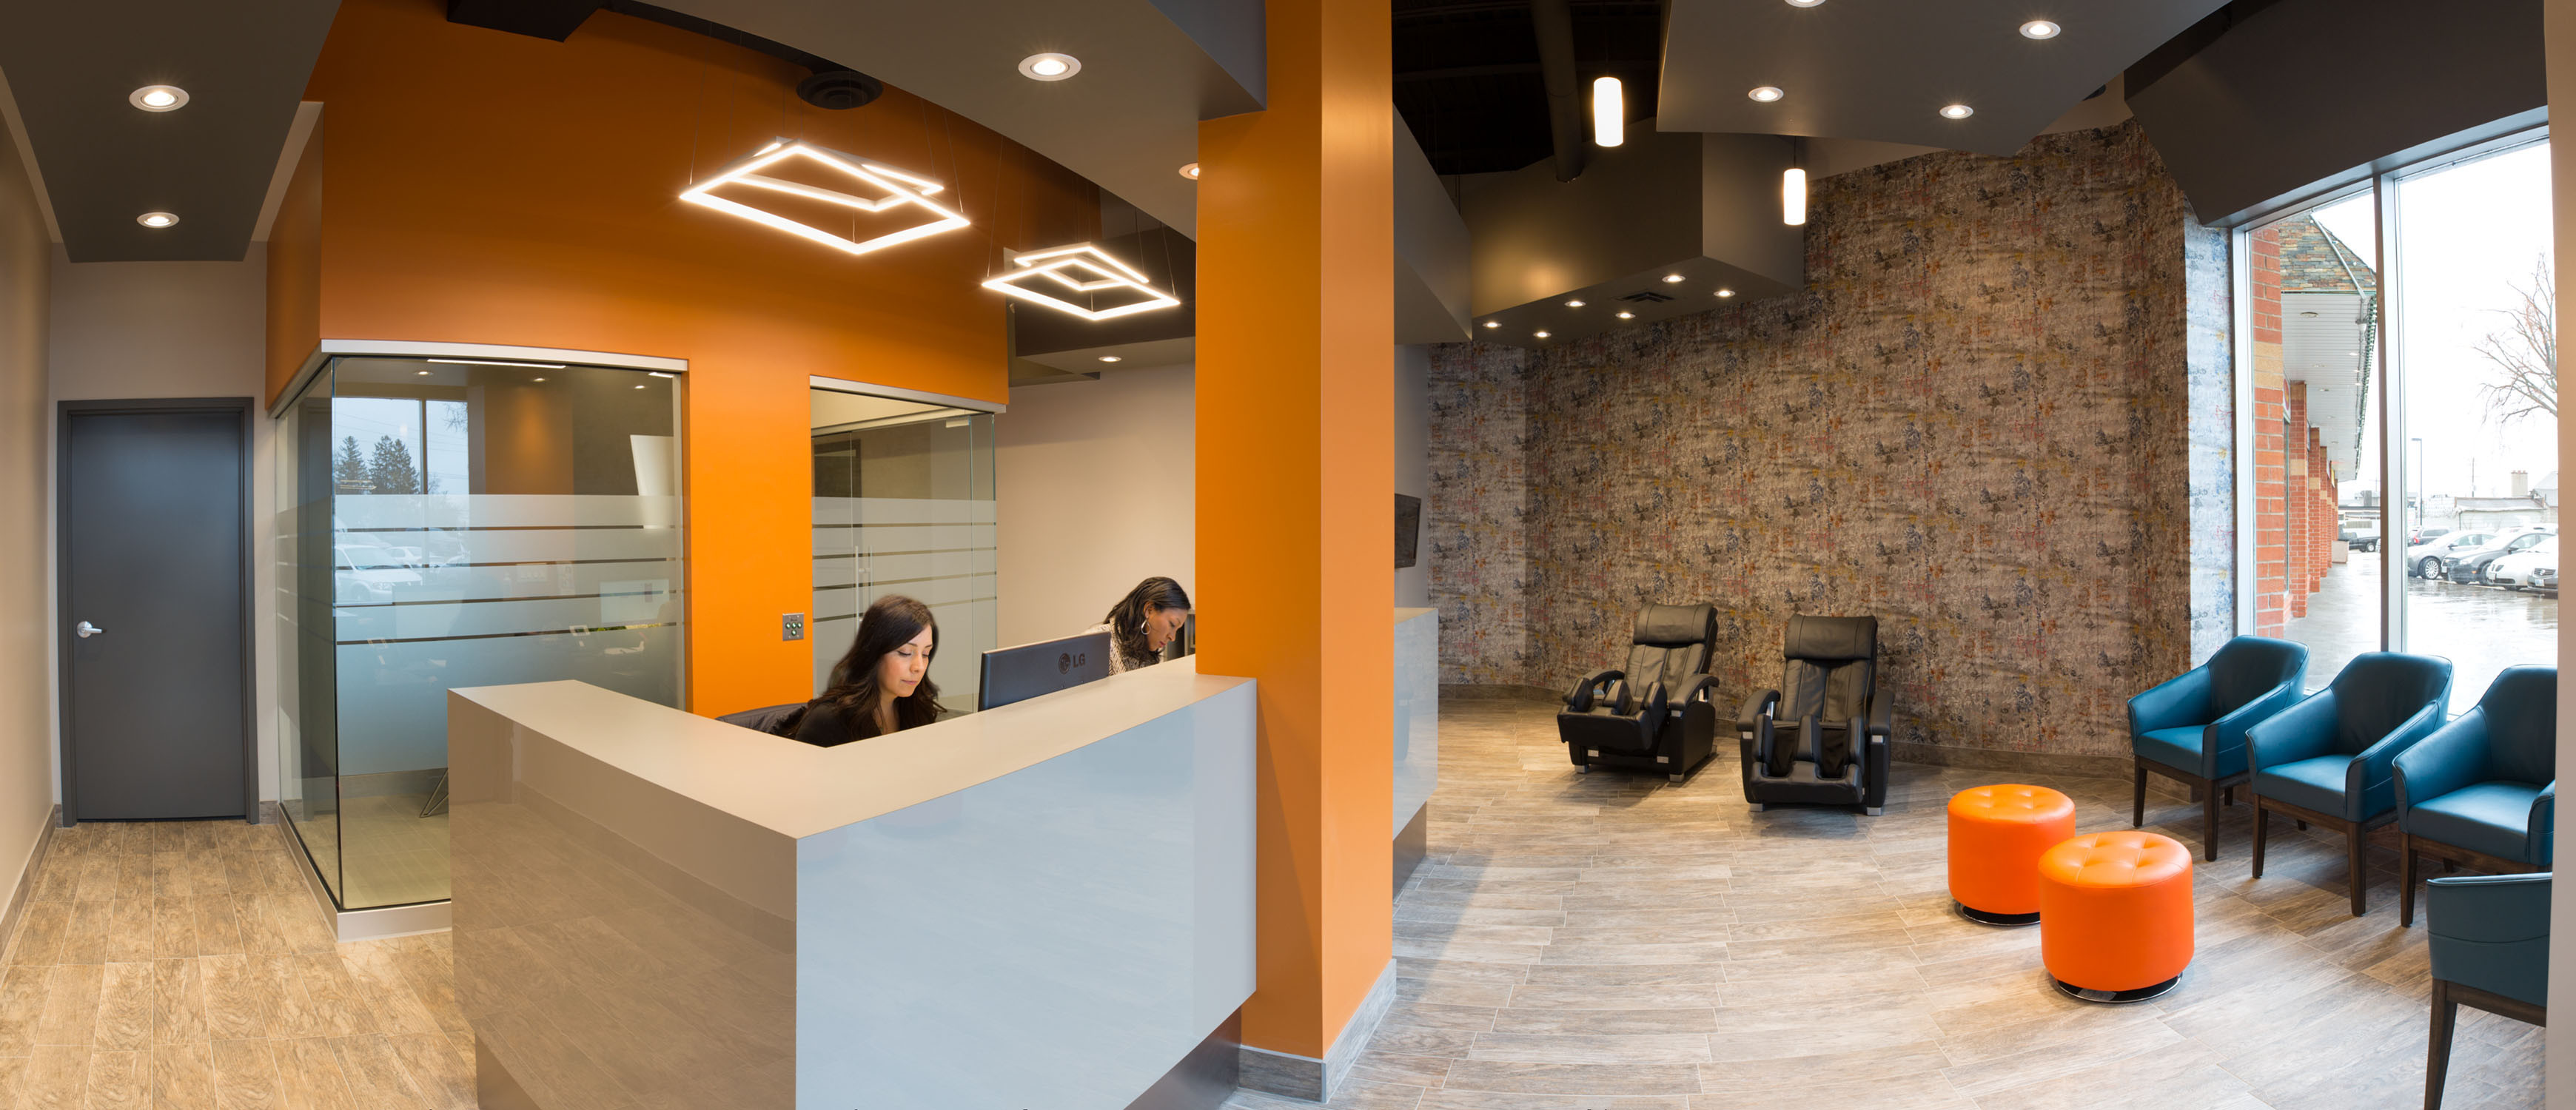 By The Lake Dental - Highland Creek patient lounge and concierge desk.